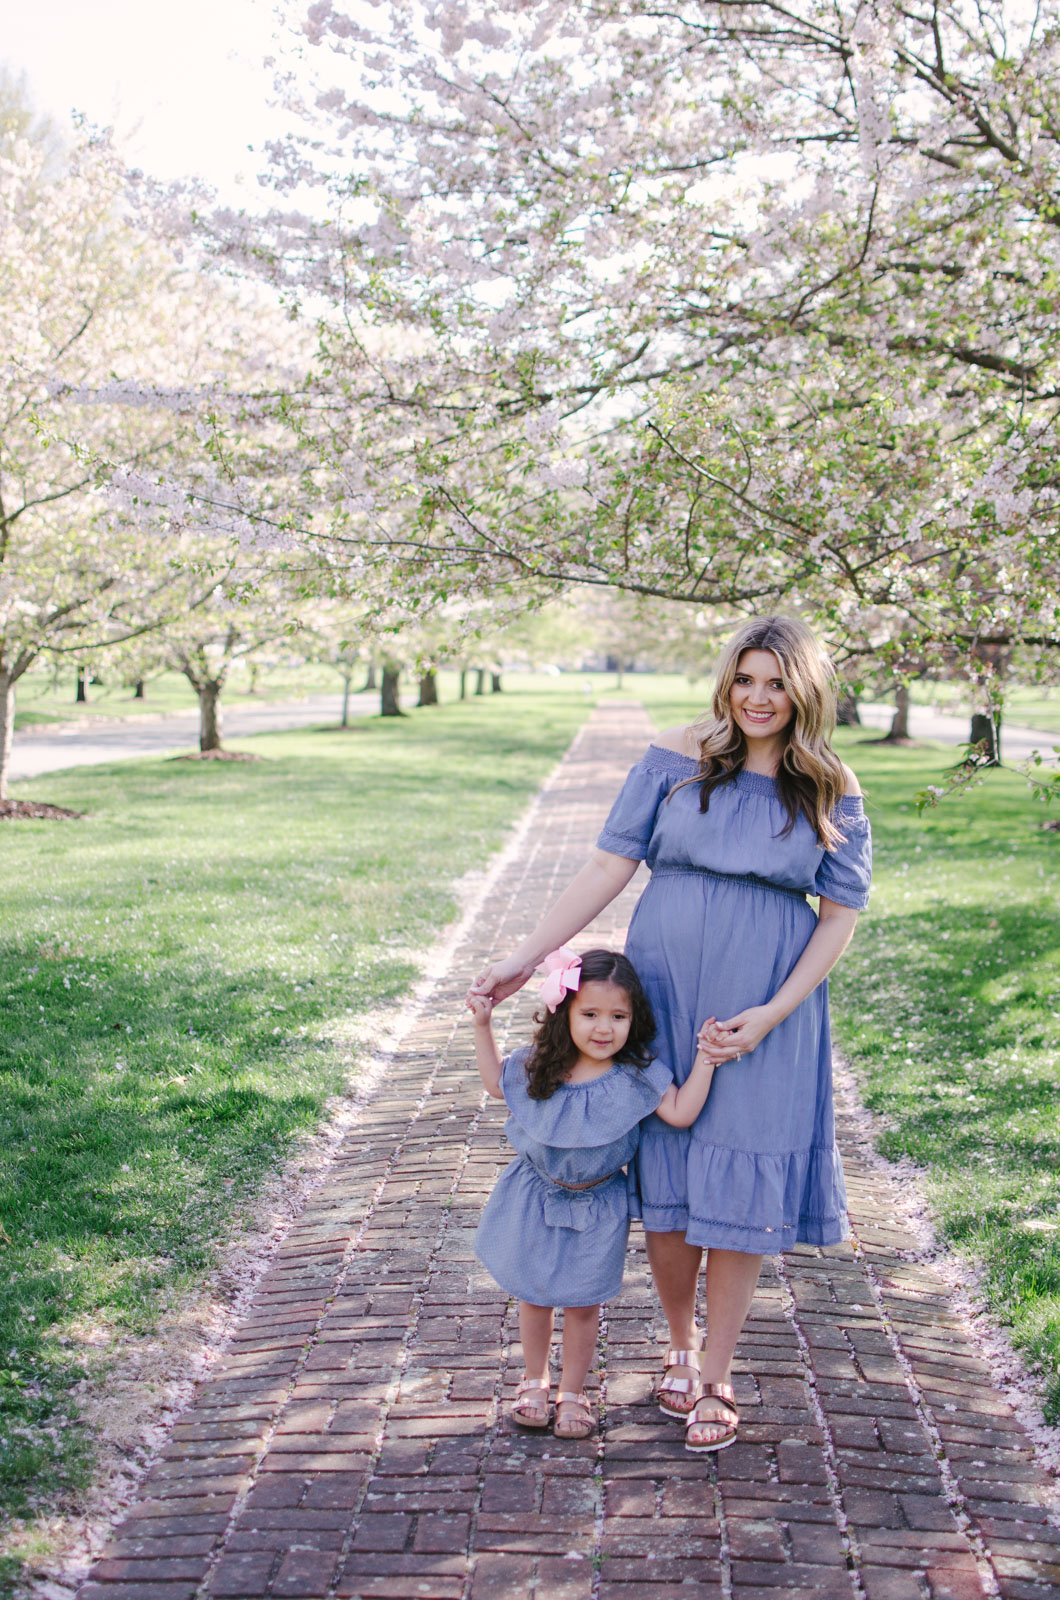 mommy and me matching spring outfits - spring mommy and me chambray dresses | For more mommy and me outfits, see bylaurenm.com!